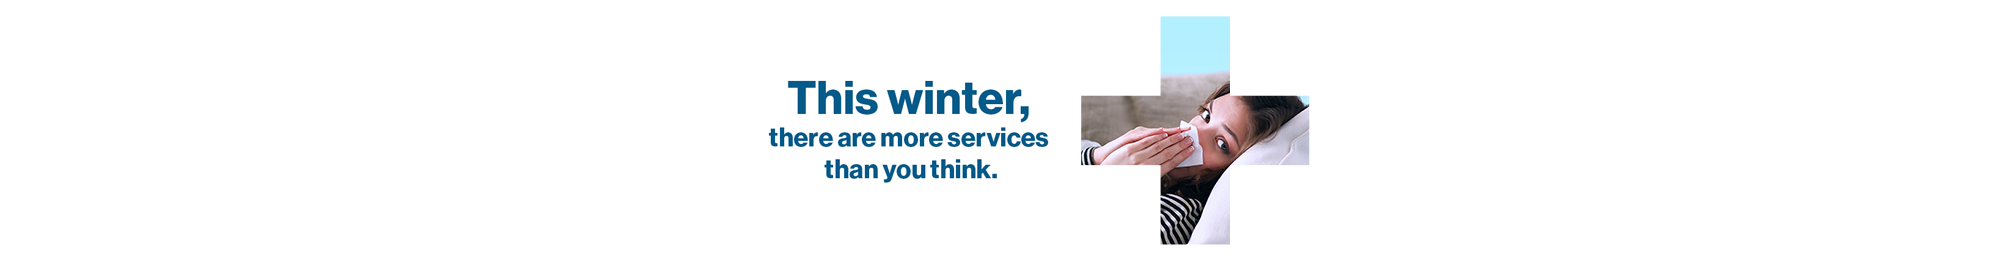 This winter, there are more services than you think.